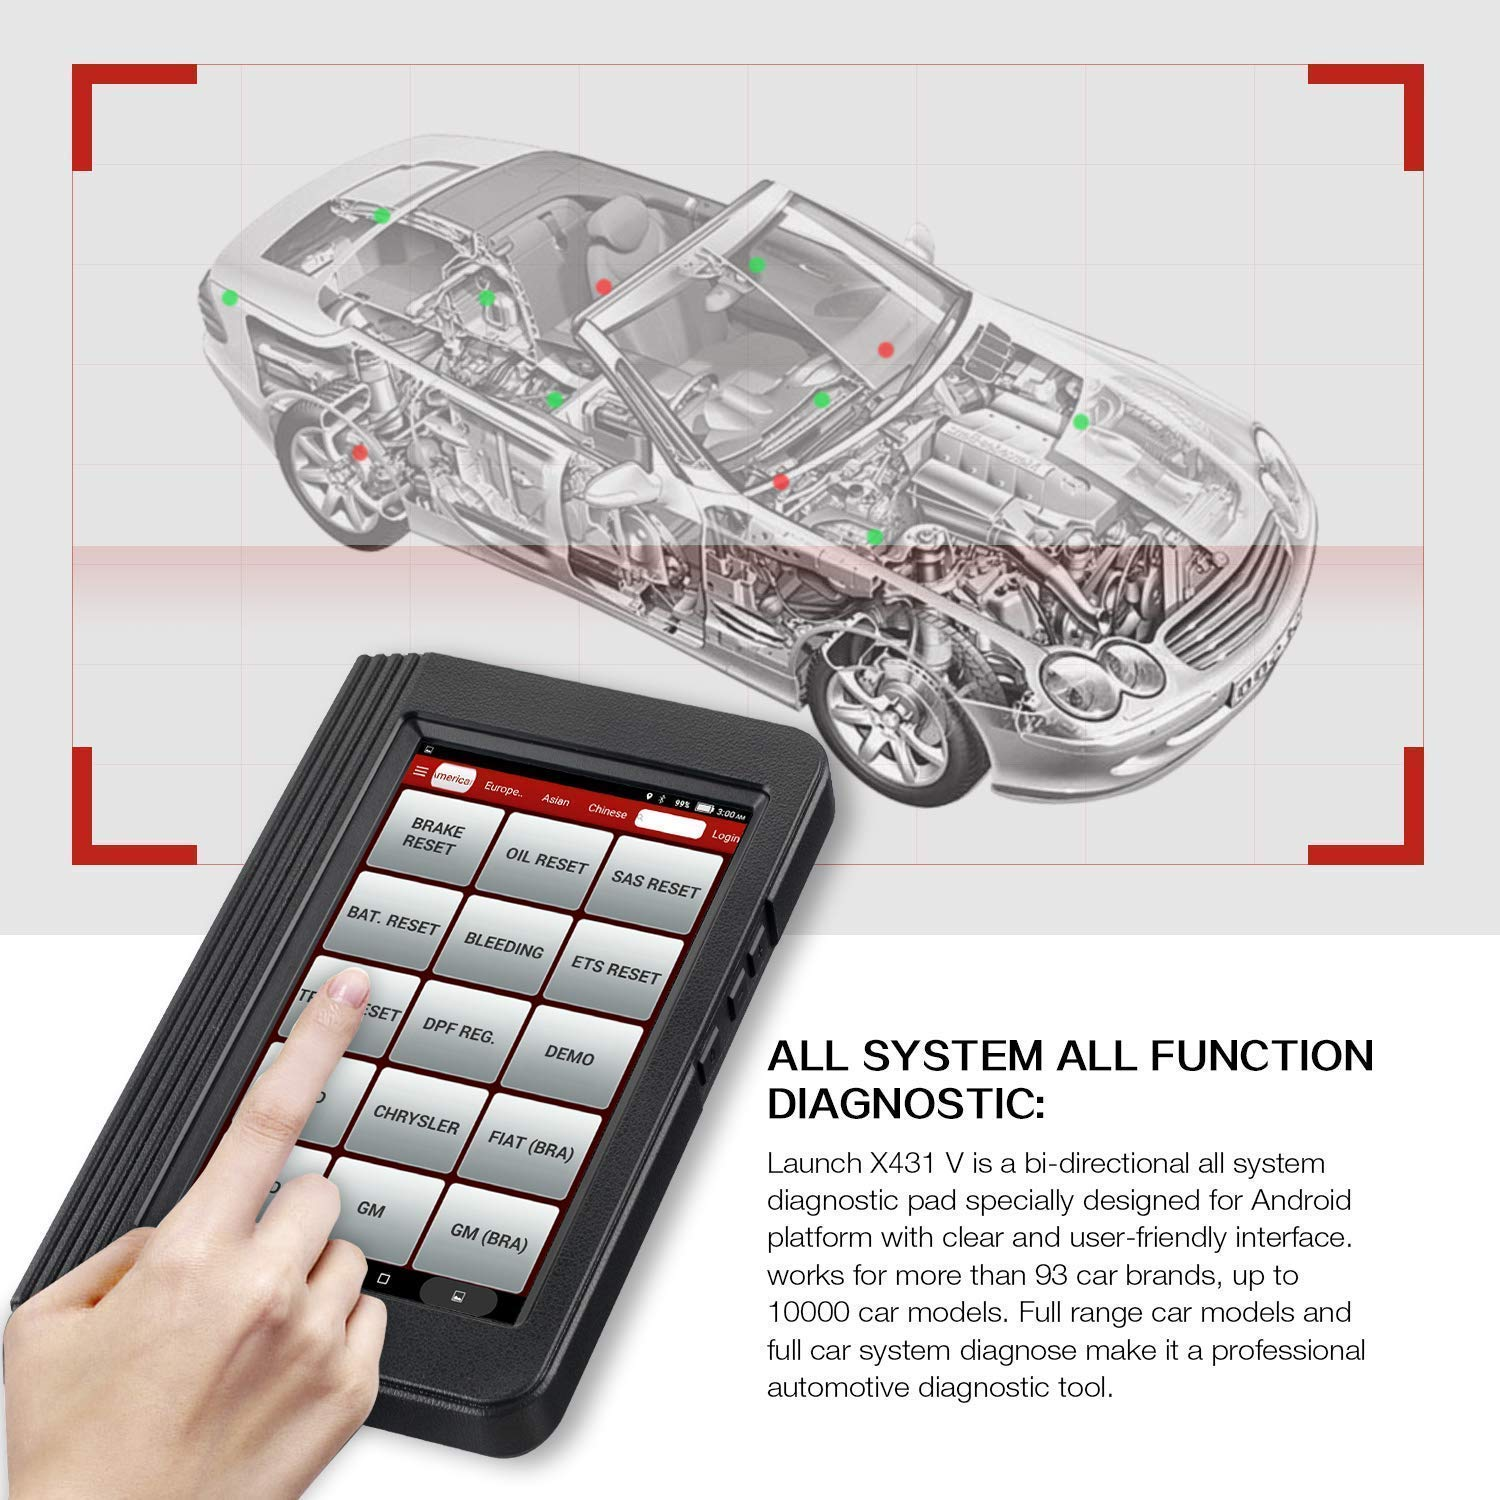 LAUNCH X431 V PRO Bi-Directional OBD2 Scan Tool Actuation Test,ECU Coding,Key Programming, Reset Functions,One-Key Generate Vehicle Health Report,Live Data Graphing-Free Update by LAUNCH (Image #6)